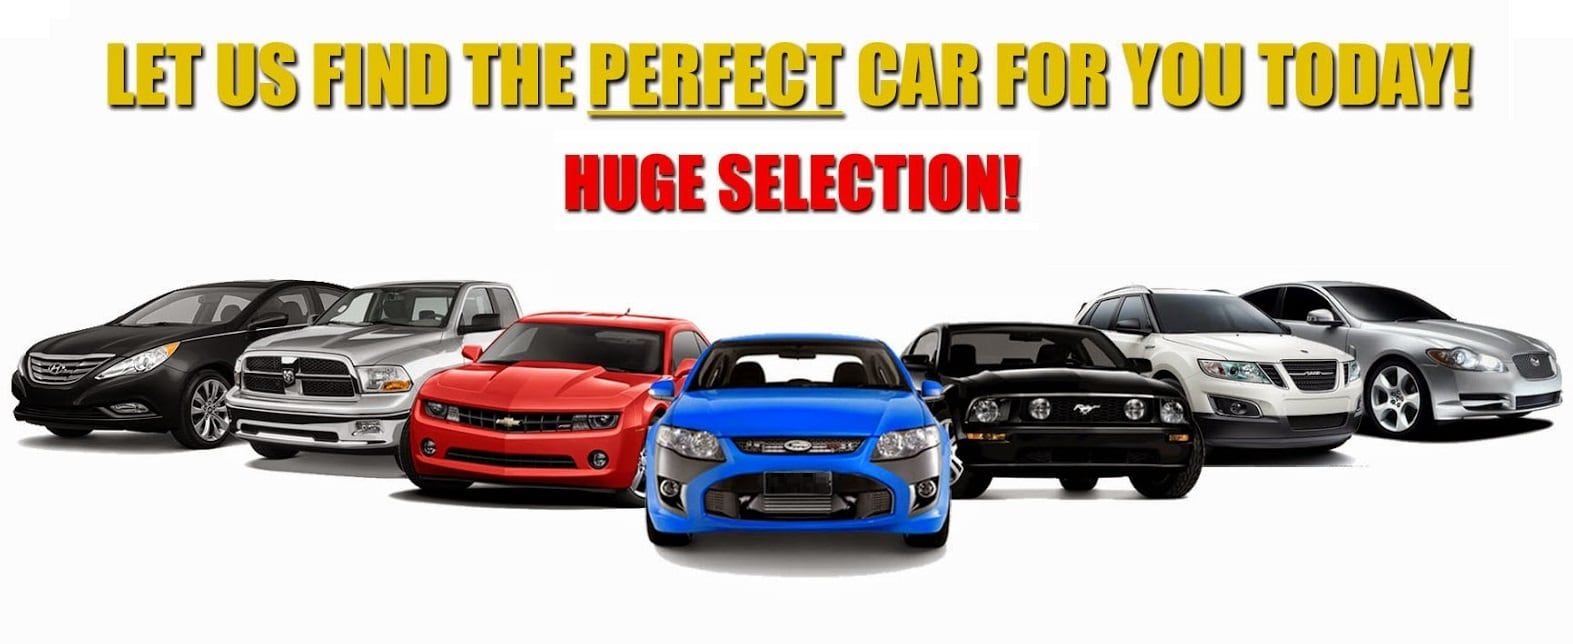 New Cheap Used Car Lots Near Me Cheap Used Car Lots Near Me Best Of Affordable Cheap Car Dealers Near Me In Dddbdbbaafff Cx X